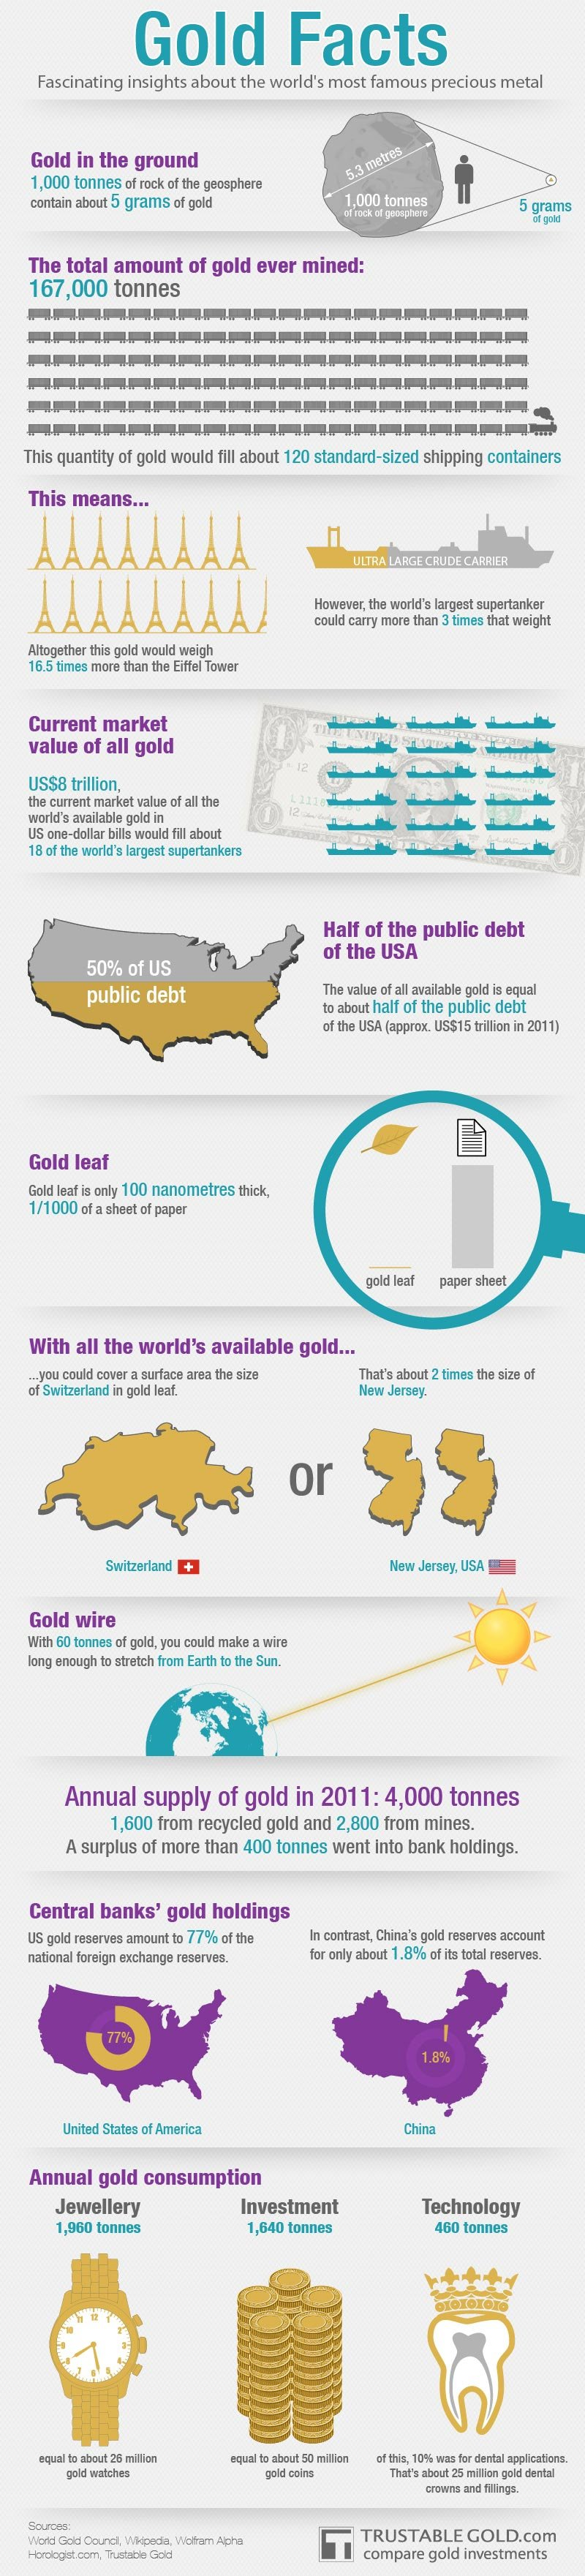 Facts About Gold-infographic